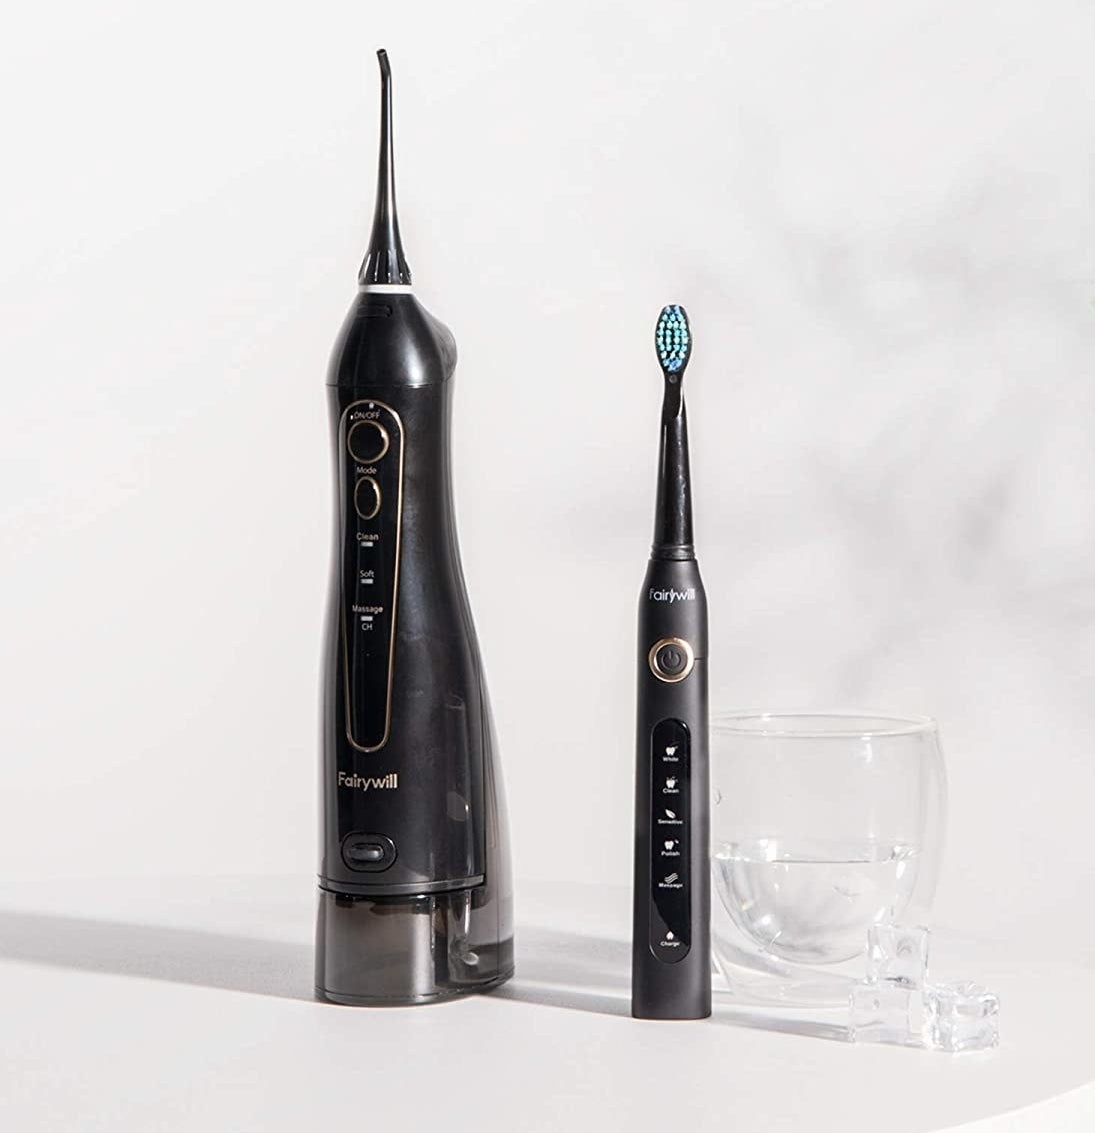 the flosser and toothbrush duo on a table next to a glass